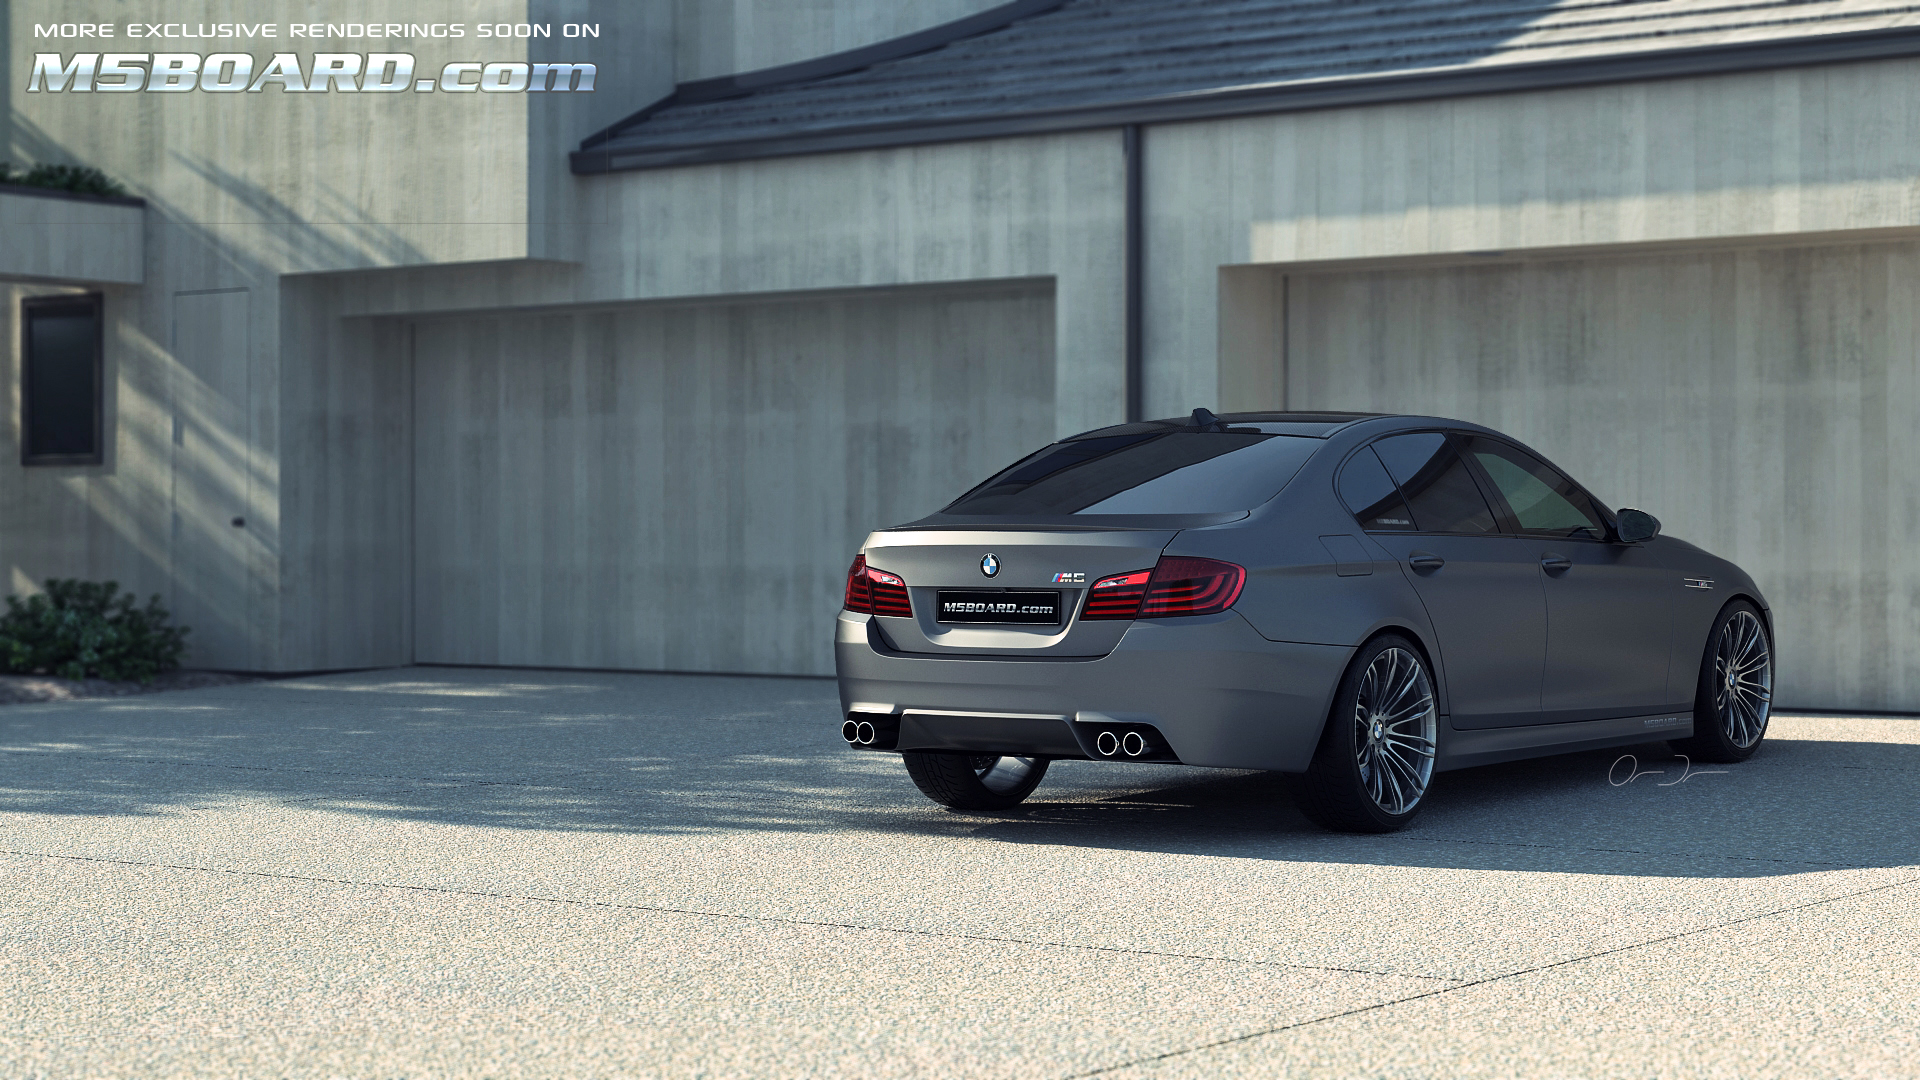 Picture: (3D Studiocomputerrendering): Frozen Gray / Grey BMW M5 F10 Individual with black wheels in front of four car garage (and updated front spoiler, reardiffuser and normal hood)-07.jpg